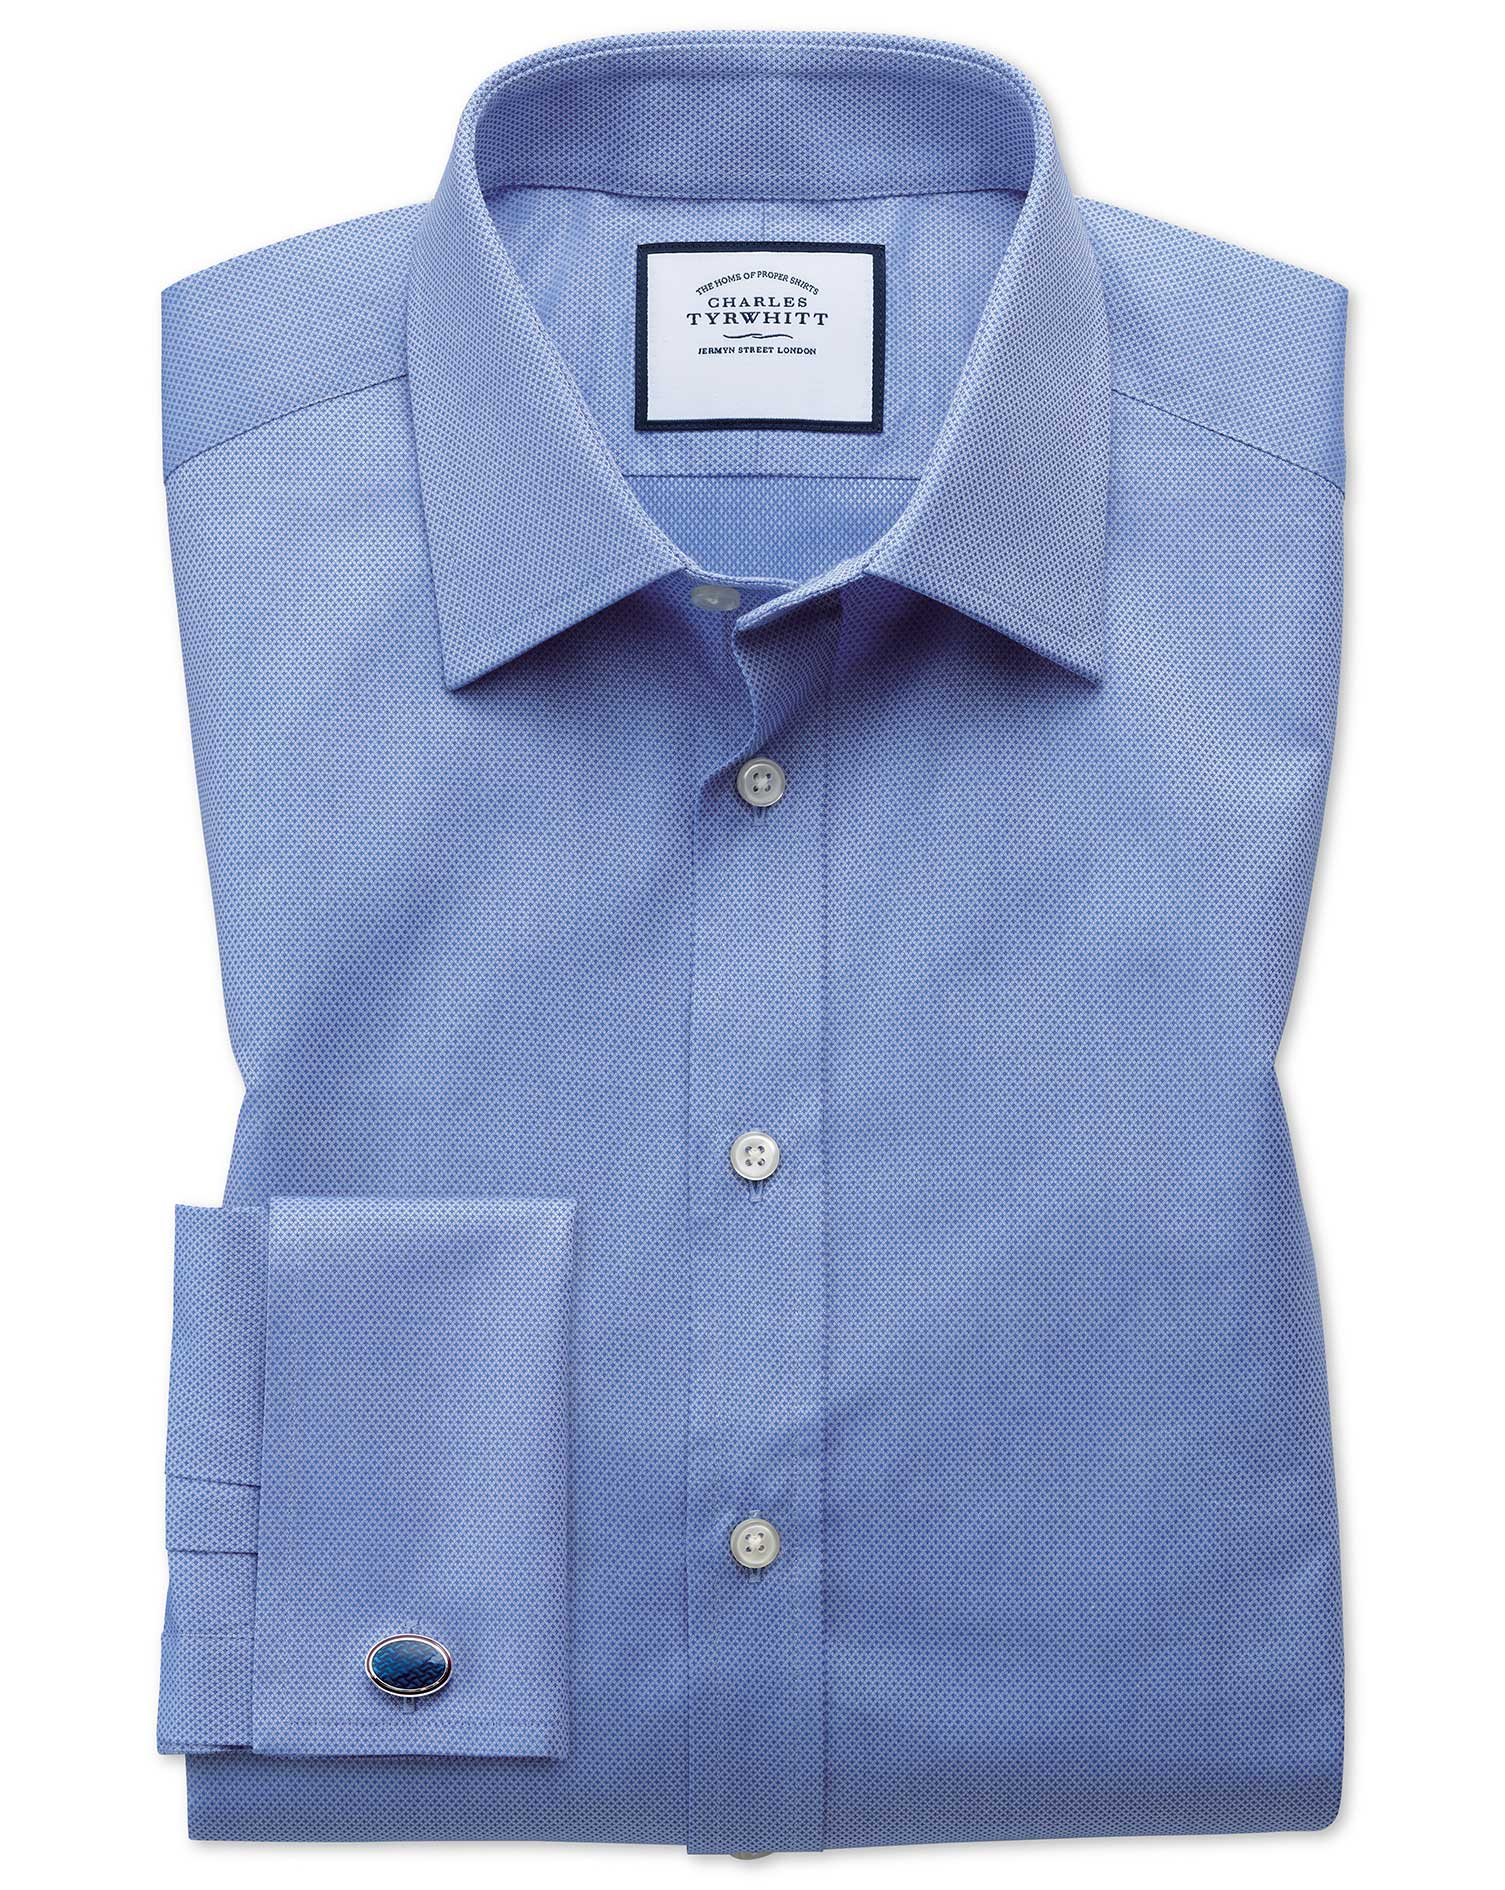 Classic Fit Egyptian Cotton Trellis Weave Mid Blue Formal Shirt Double Cuff Size 17/36 by Charles Ty